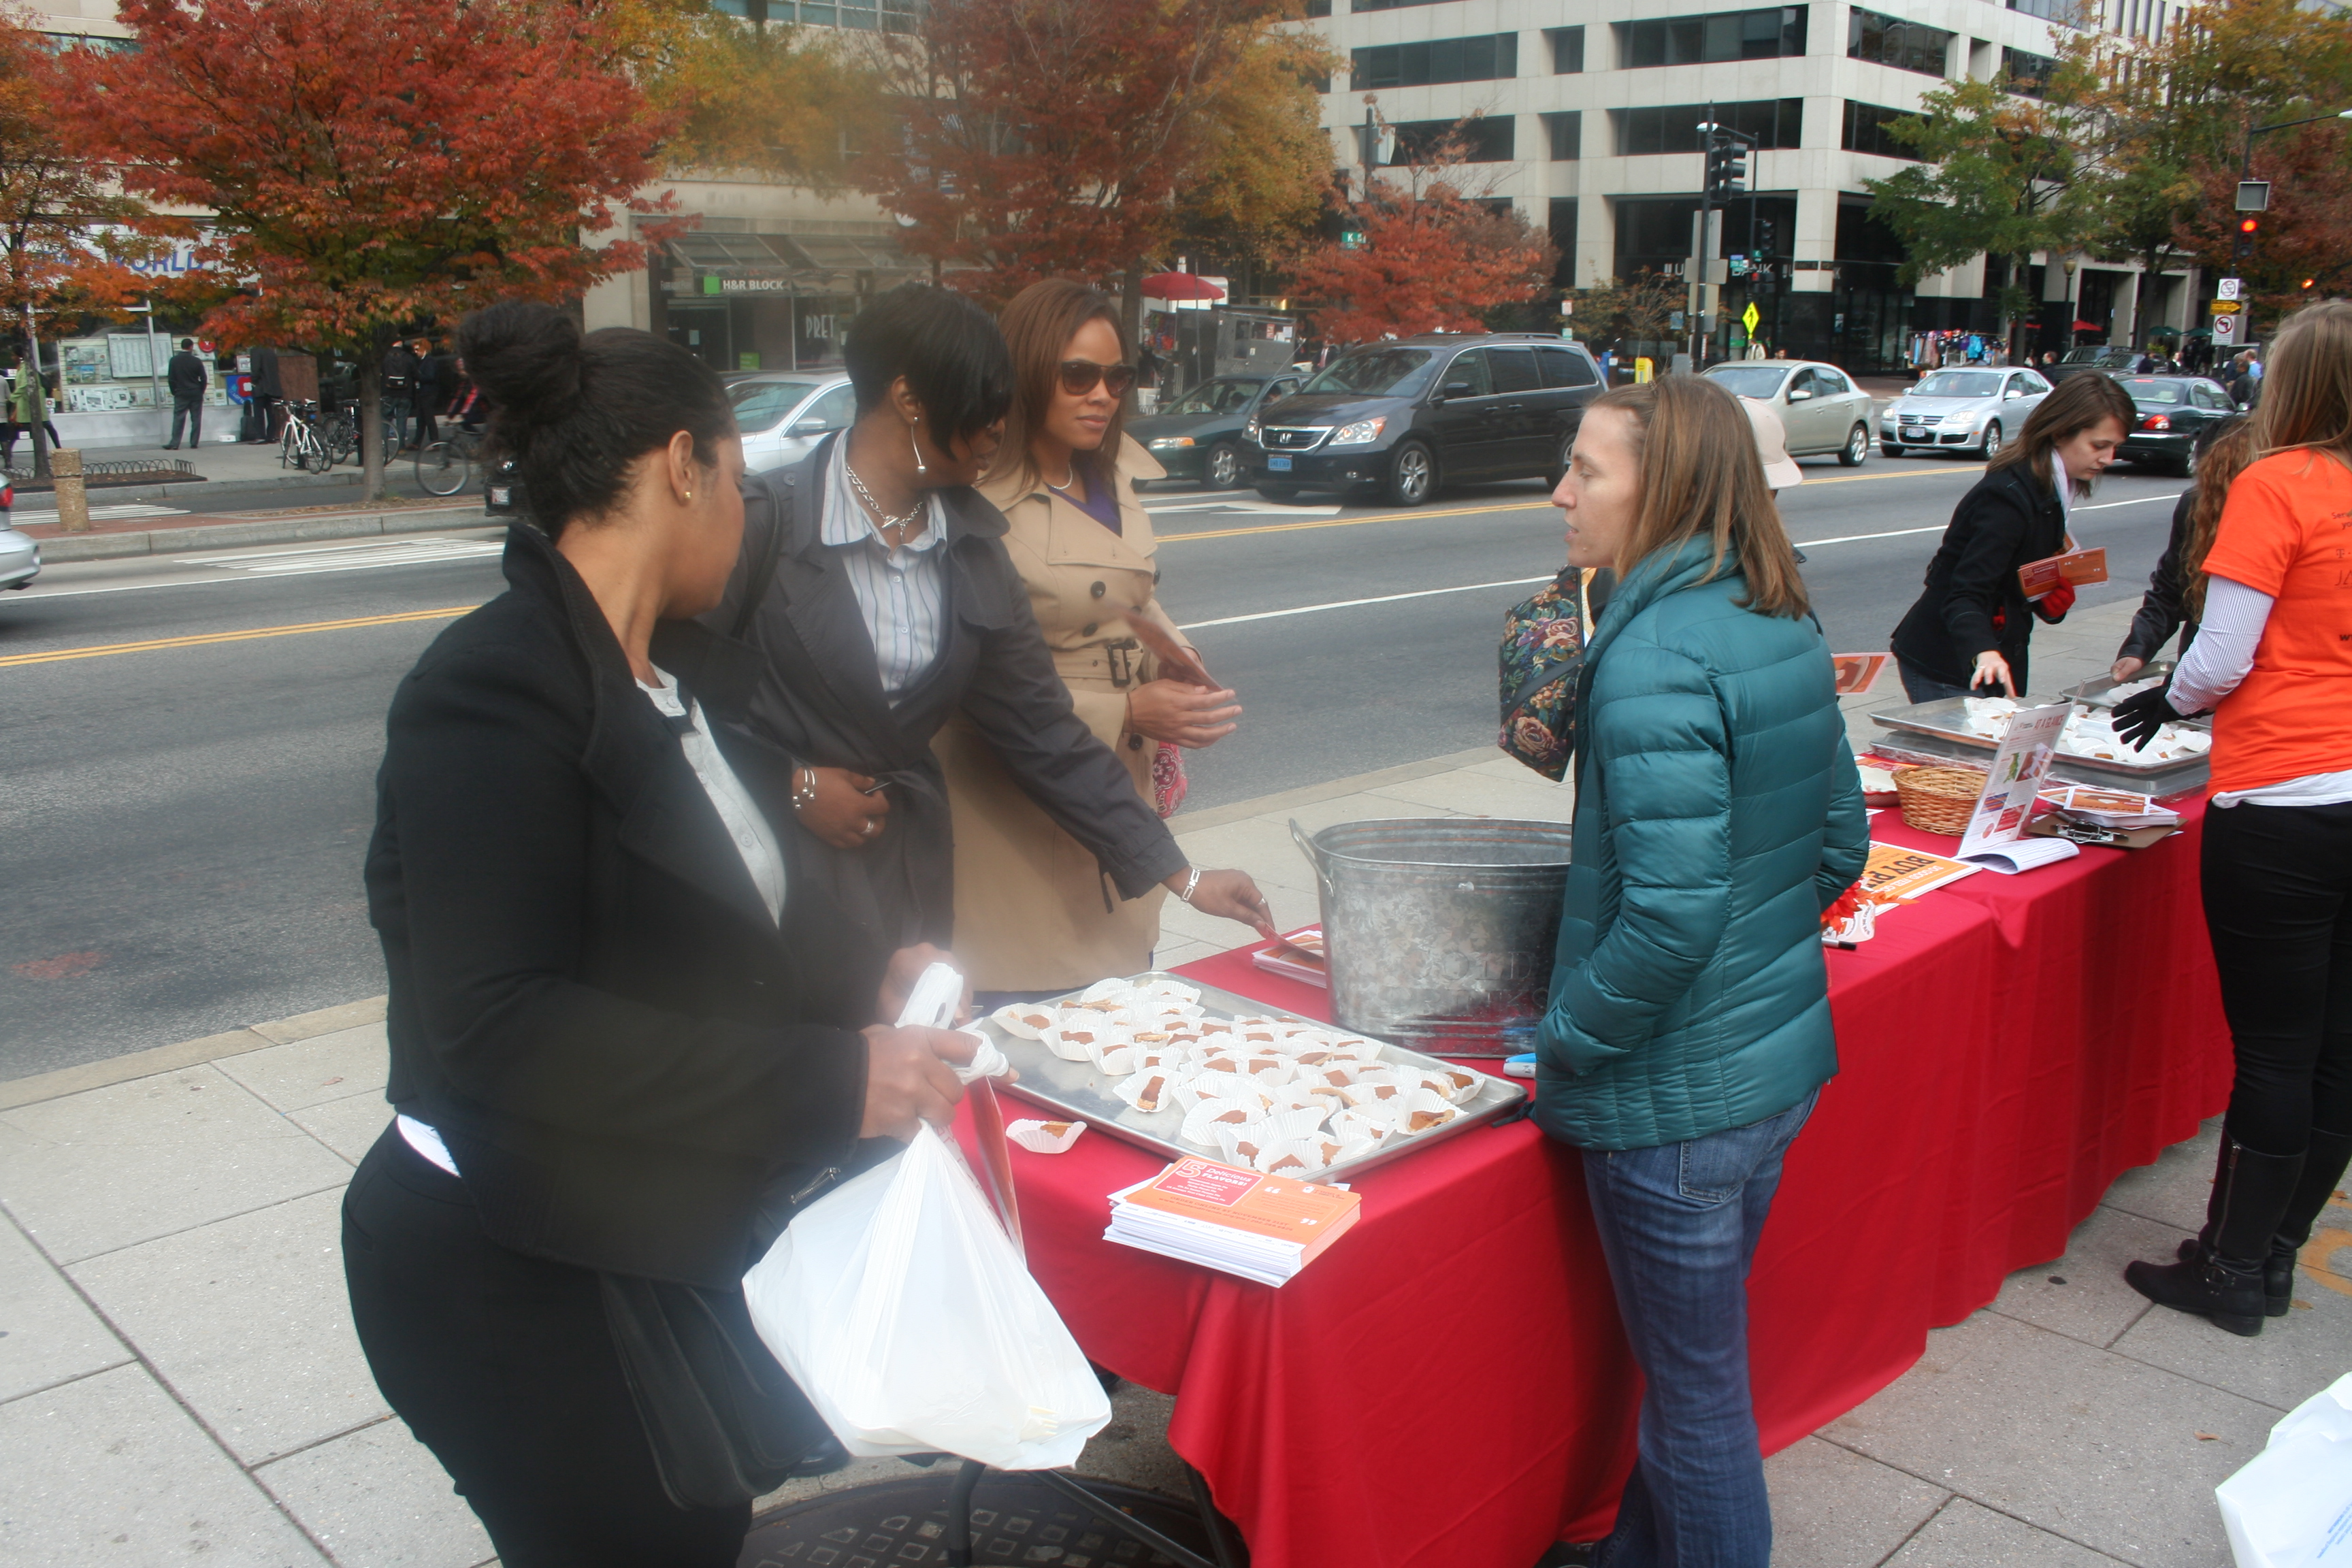 Volunteers pass out samples of apple and pumpkin pie at Farragut Square during  Pie Day on Nov. 5. Apple was the favorite of voters. (Photo: Mark Heckathorn/DC on Heels)